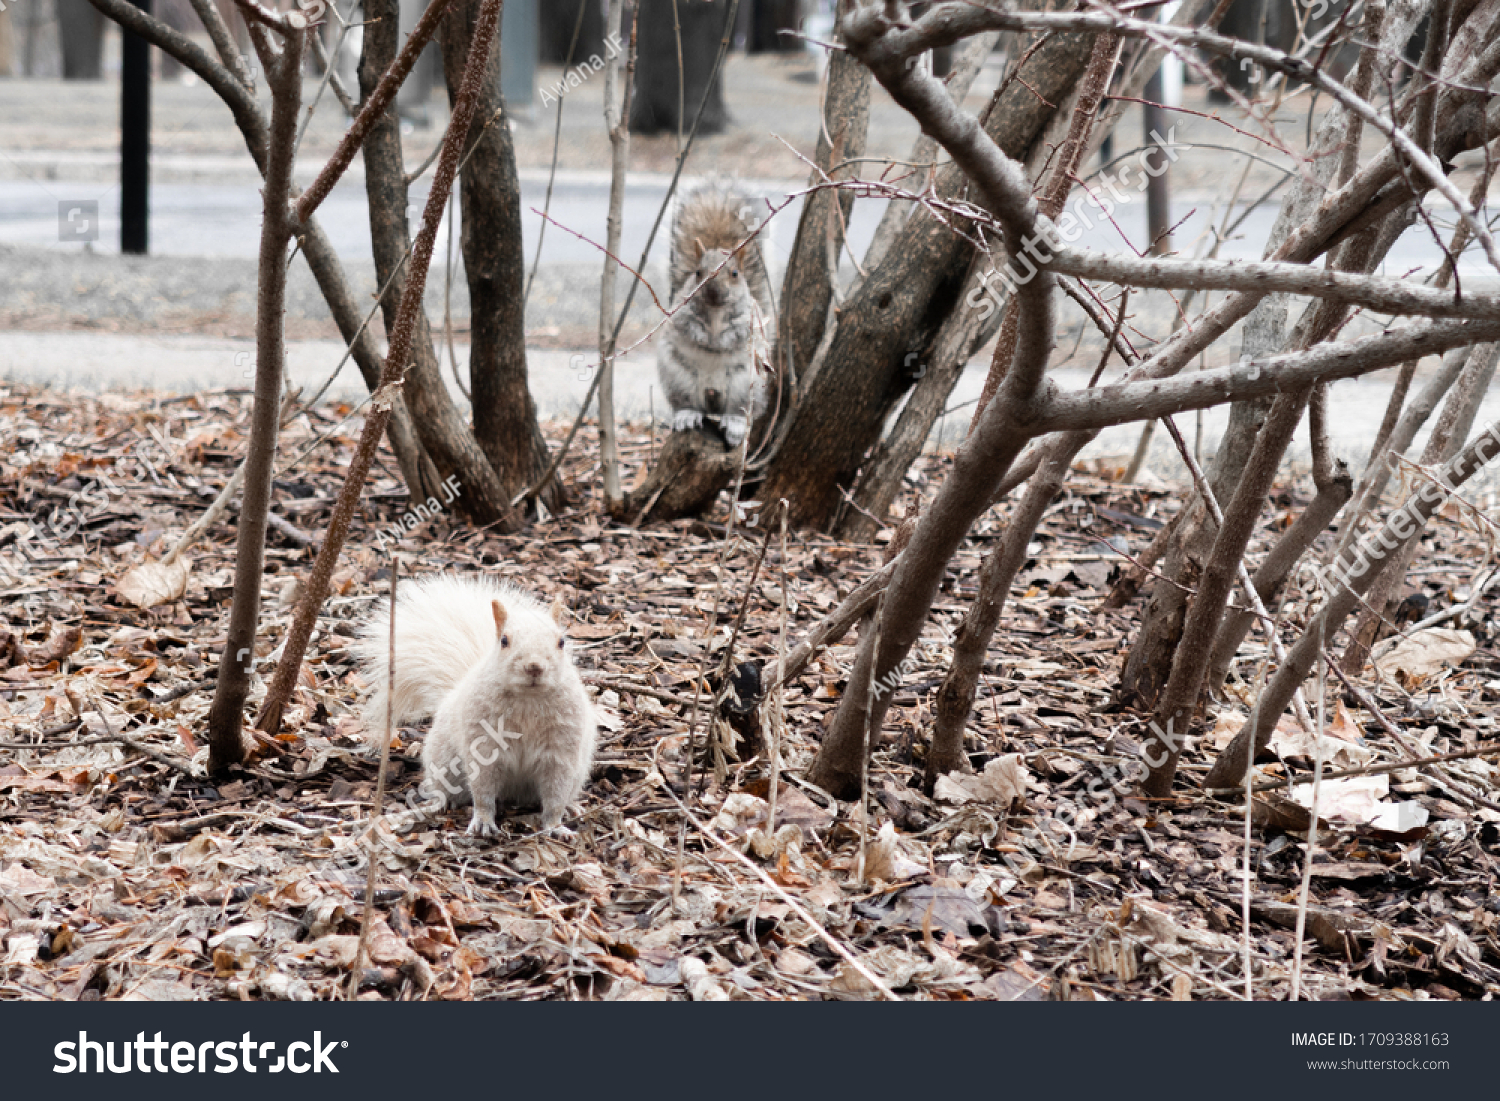 stock-photo-view-of-a-rare-albinos-squir